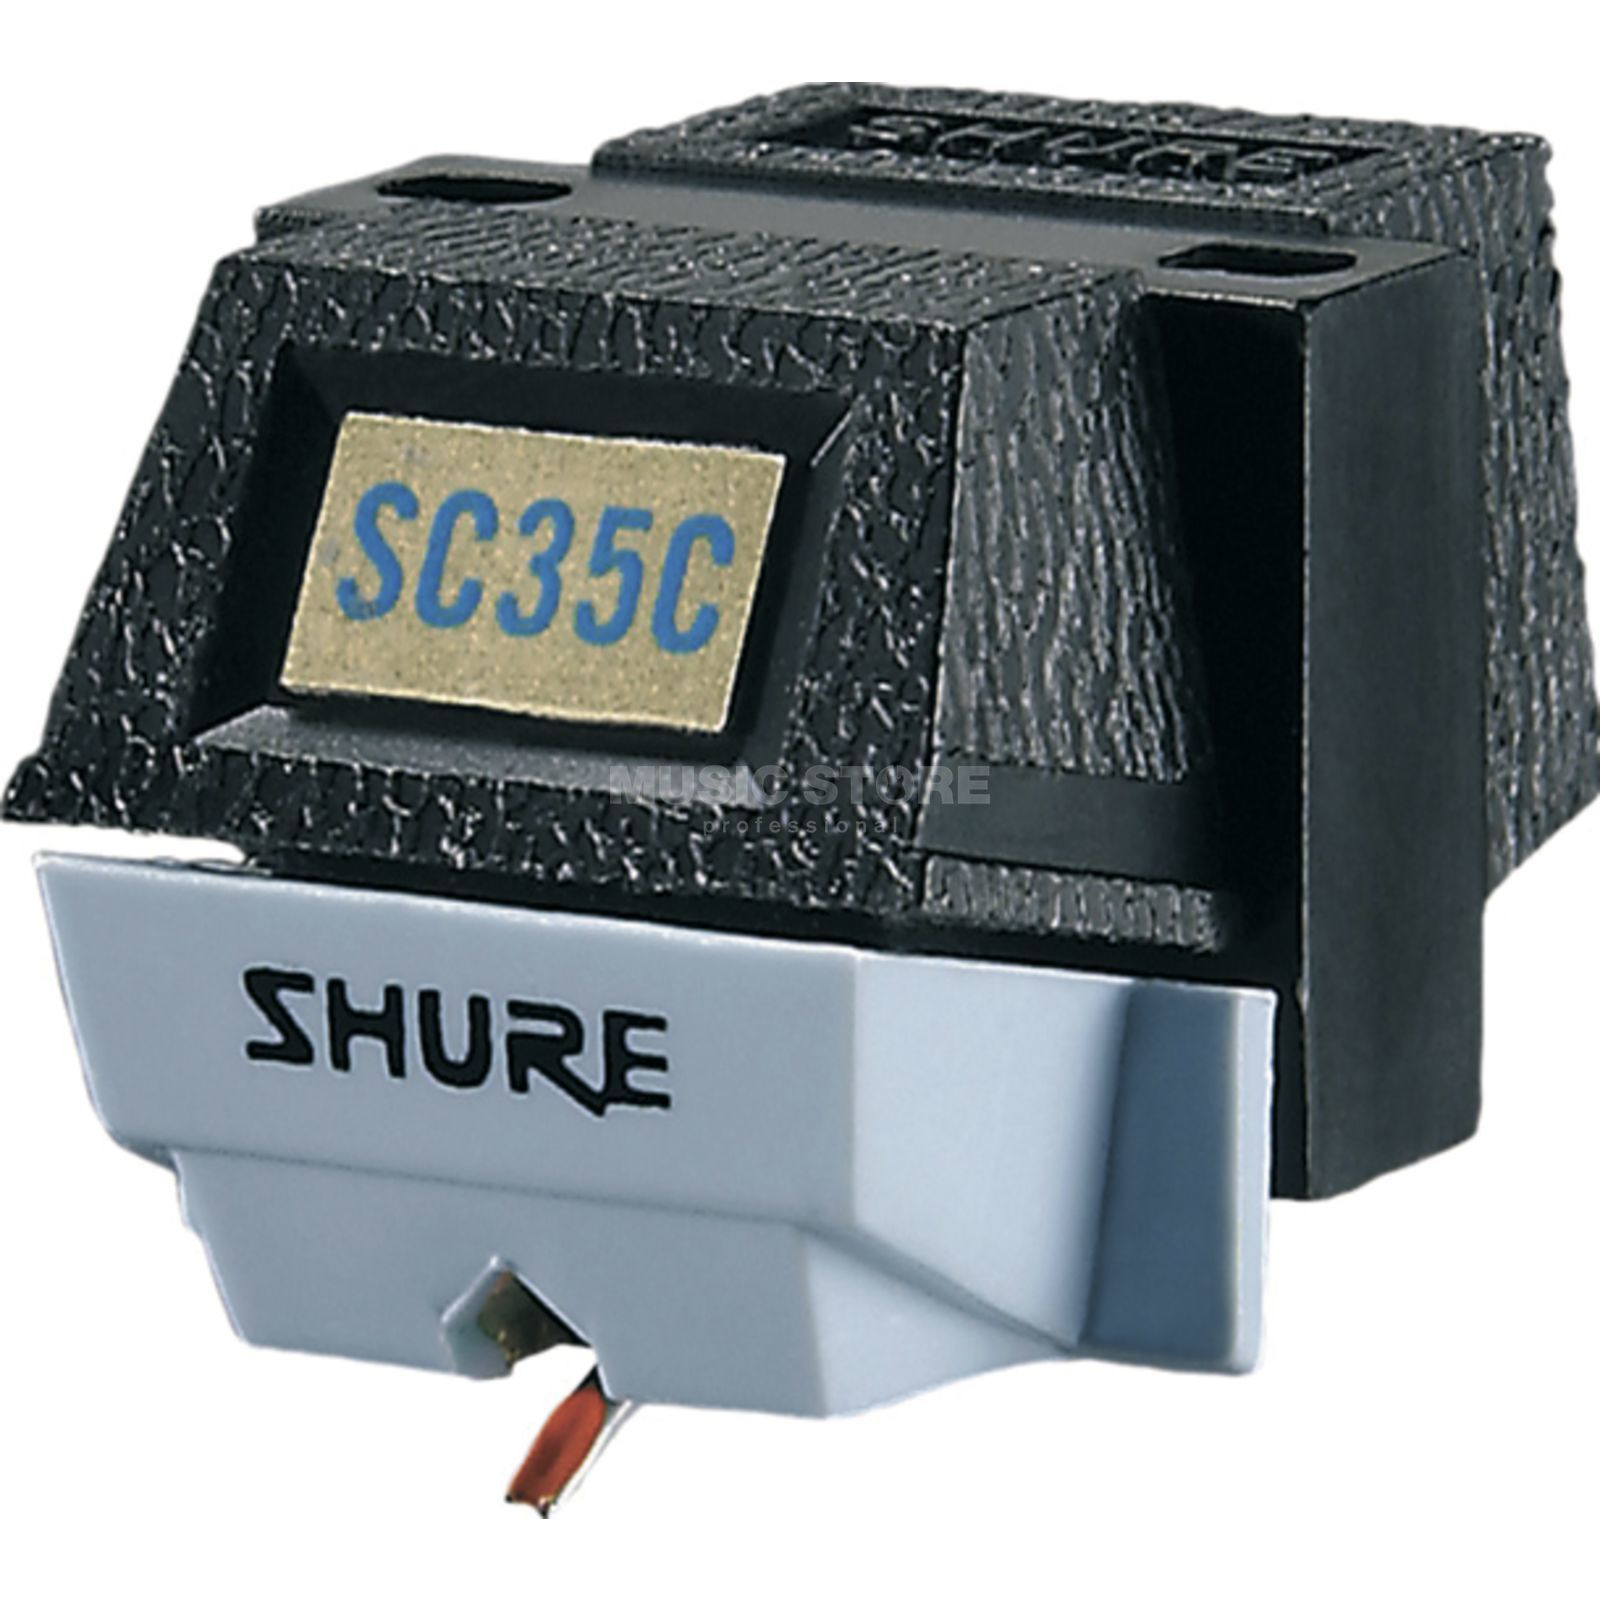 Shure SC35C / Standard DJ System V1.0 on V1.1, for PC & MAC Product Image